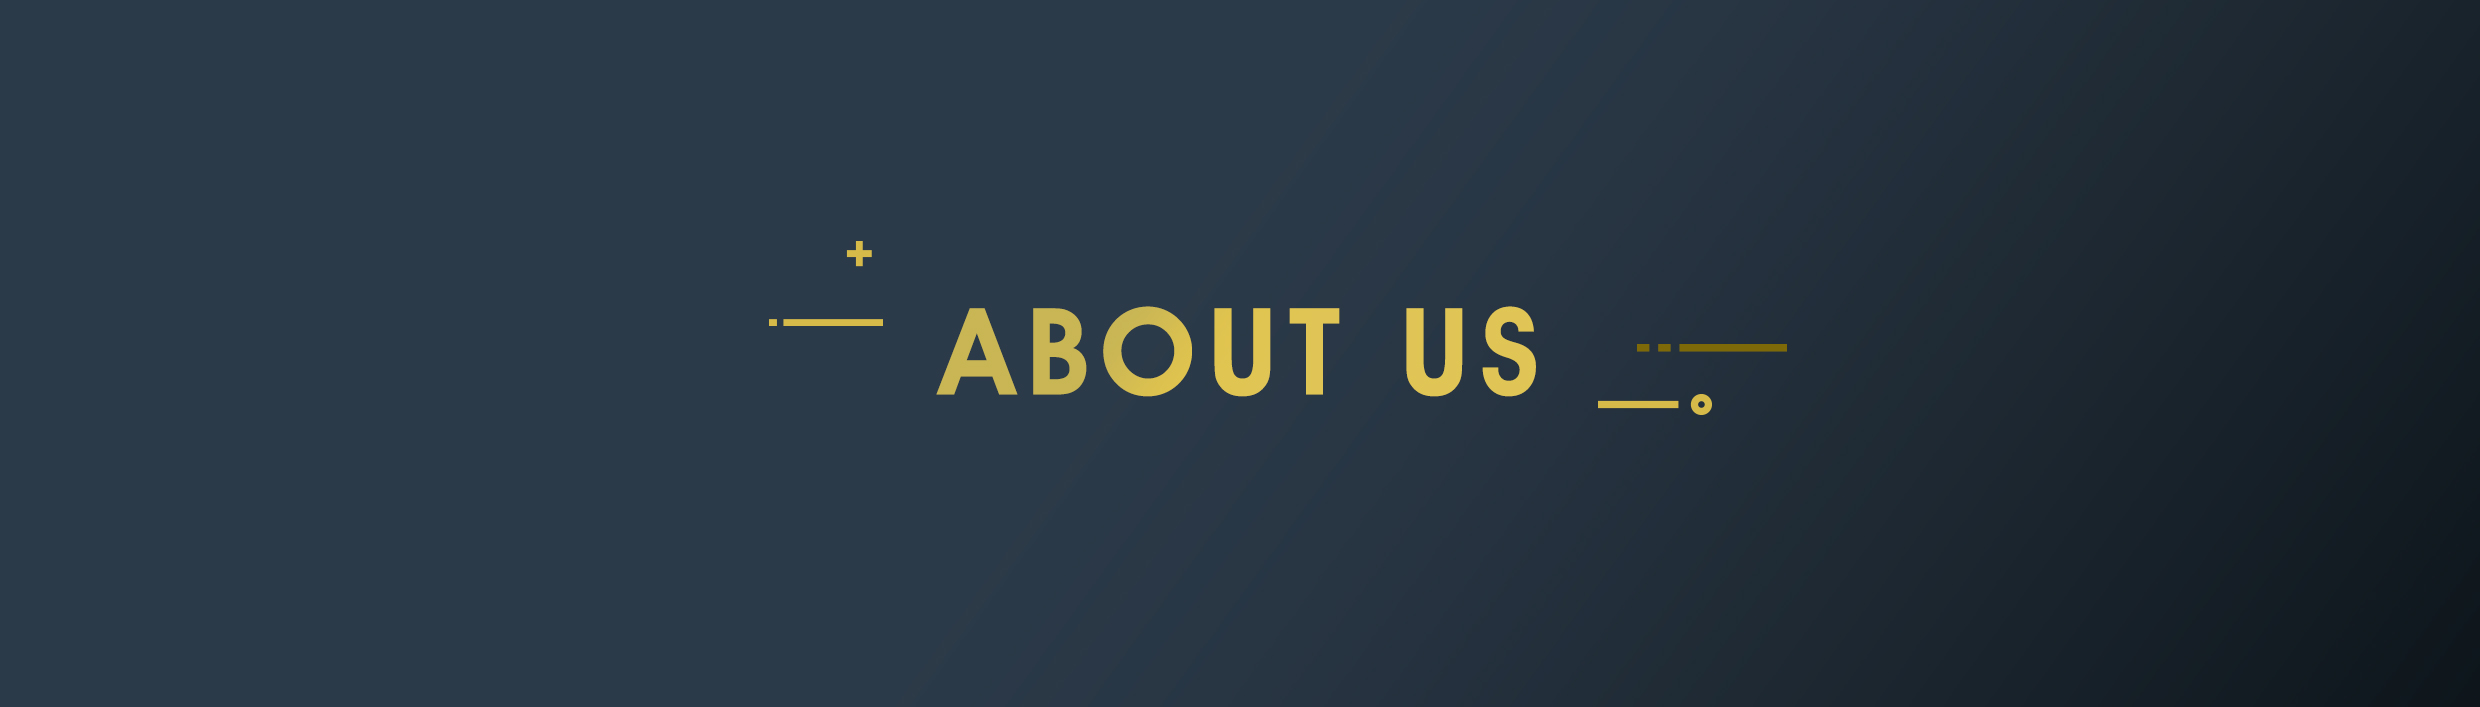 About Us | 707x2480